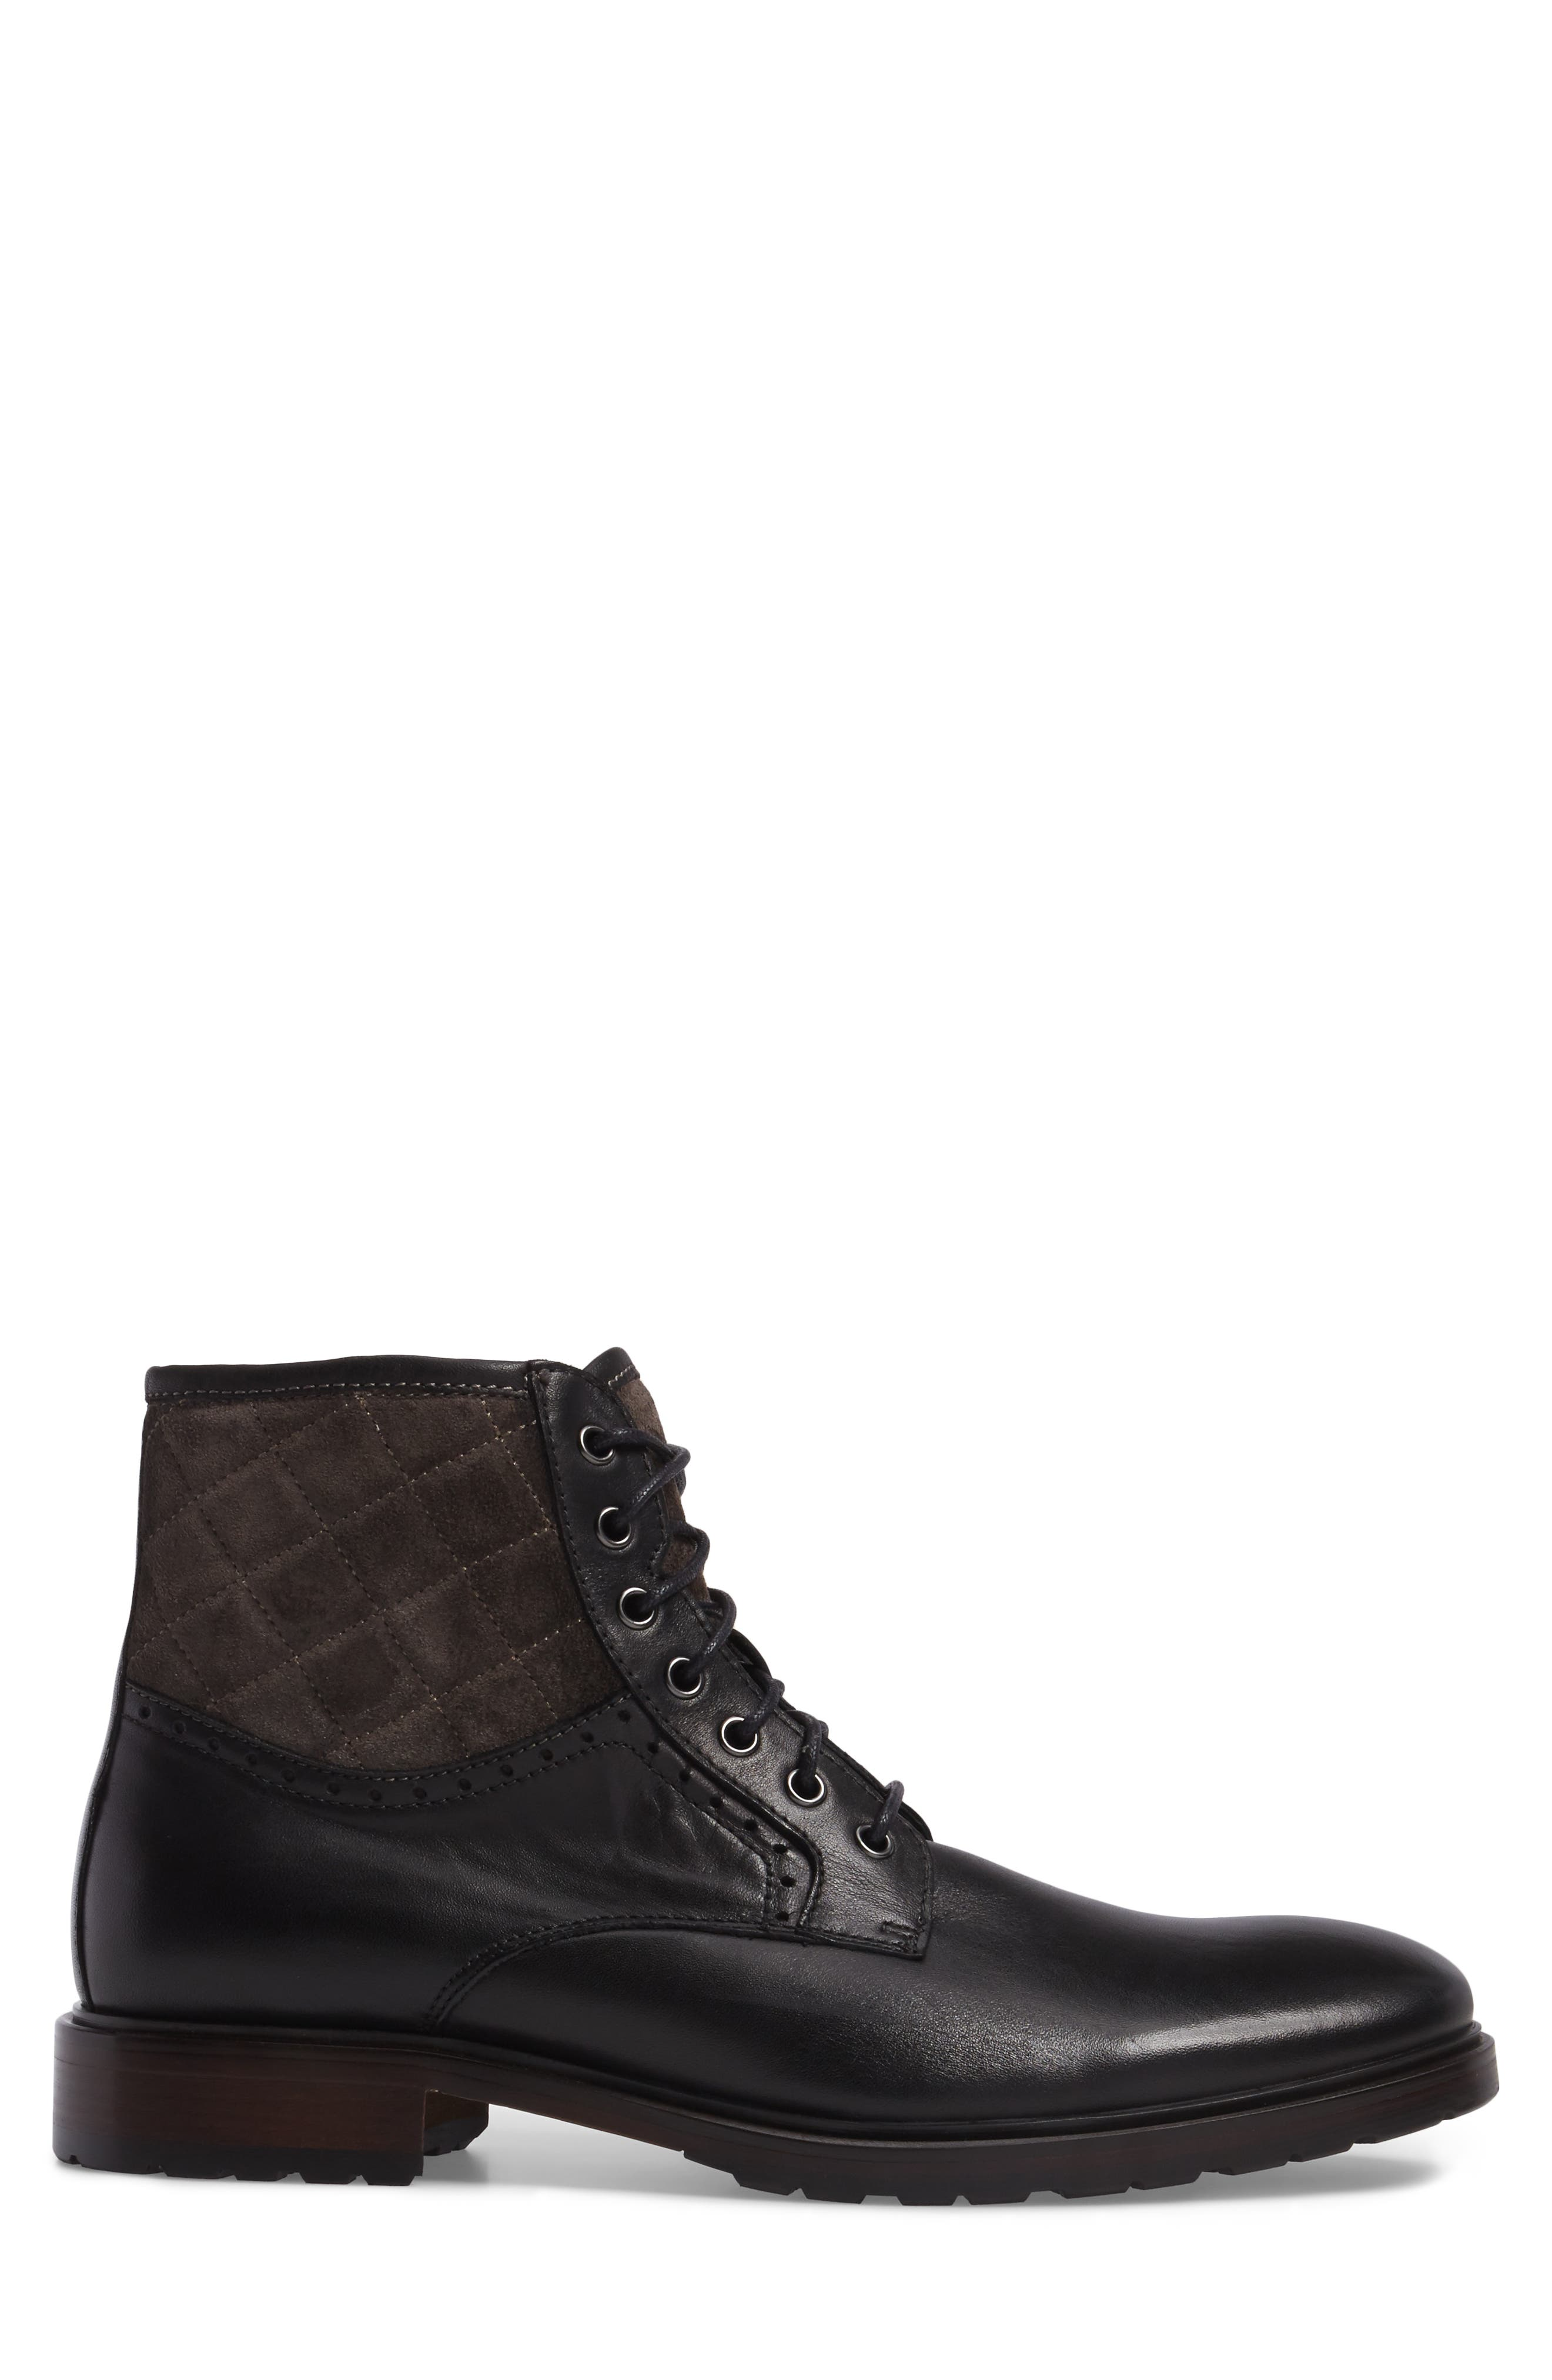 Myles Plain Toe Boot,                             Alternate thumbnail 5, color,